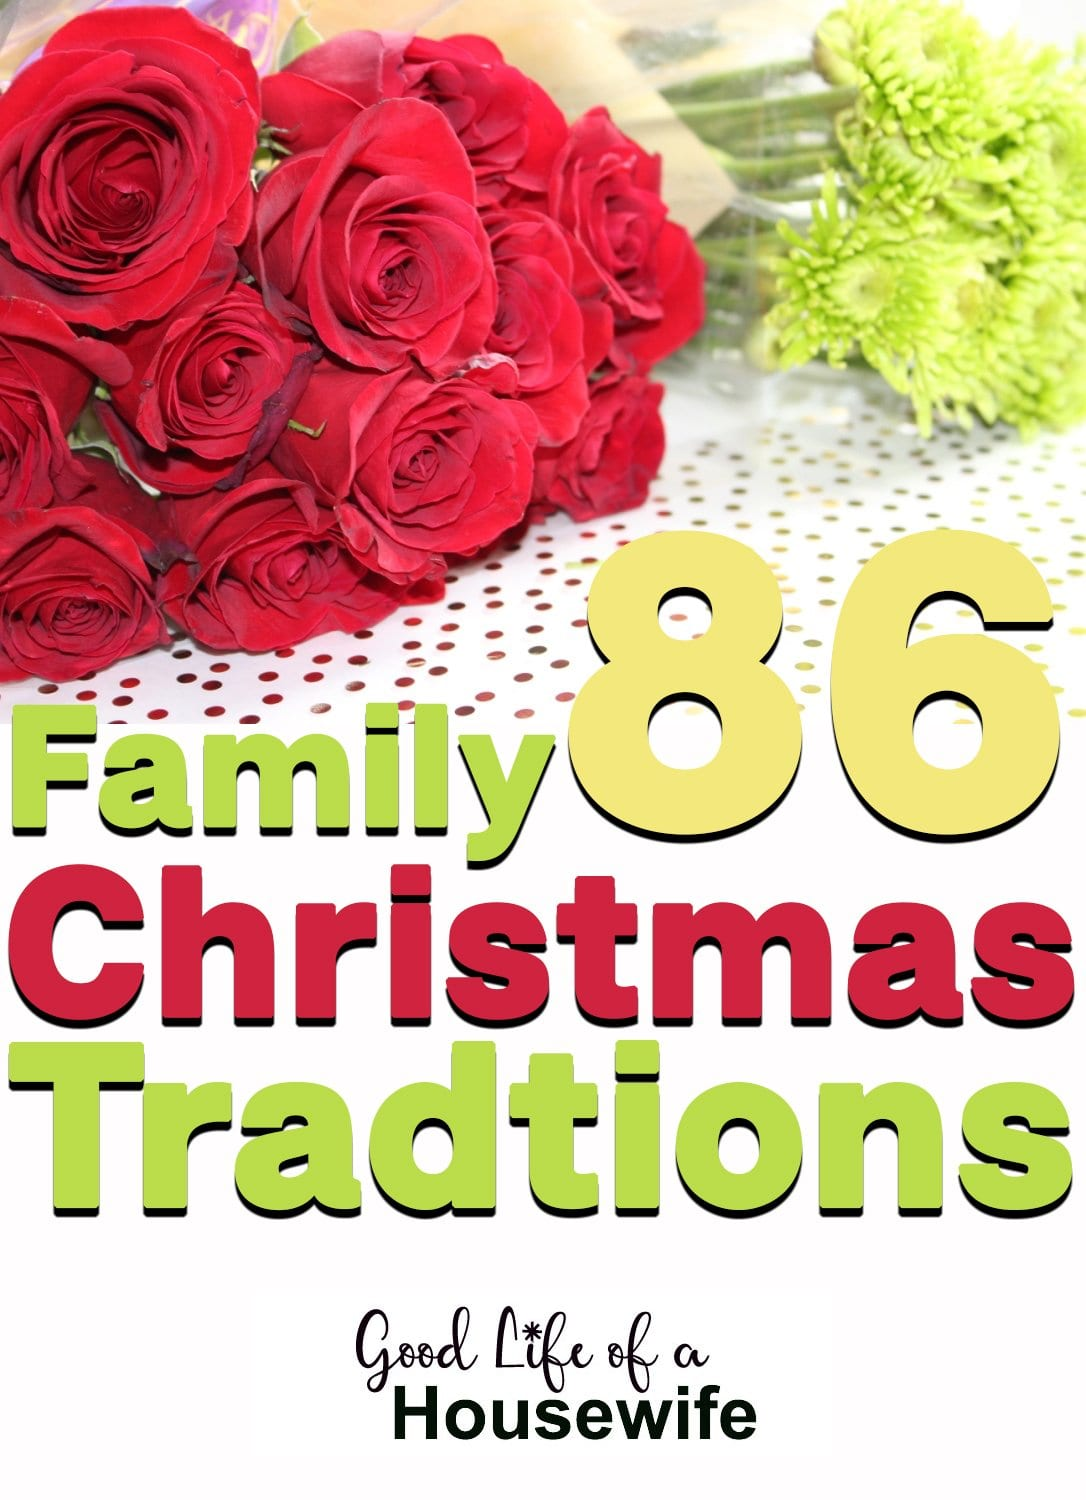 Family Christmas Traditions to do this year